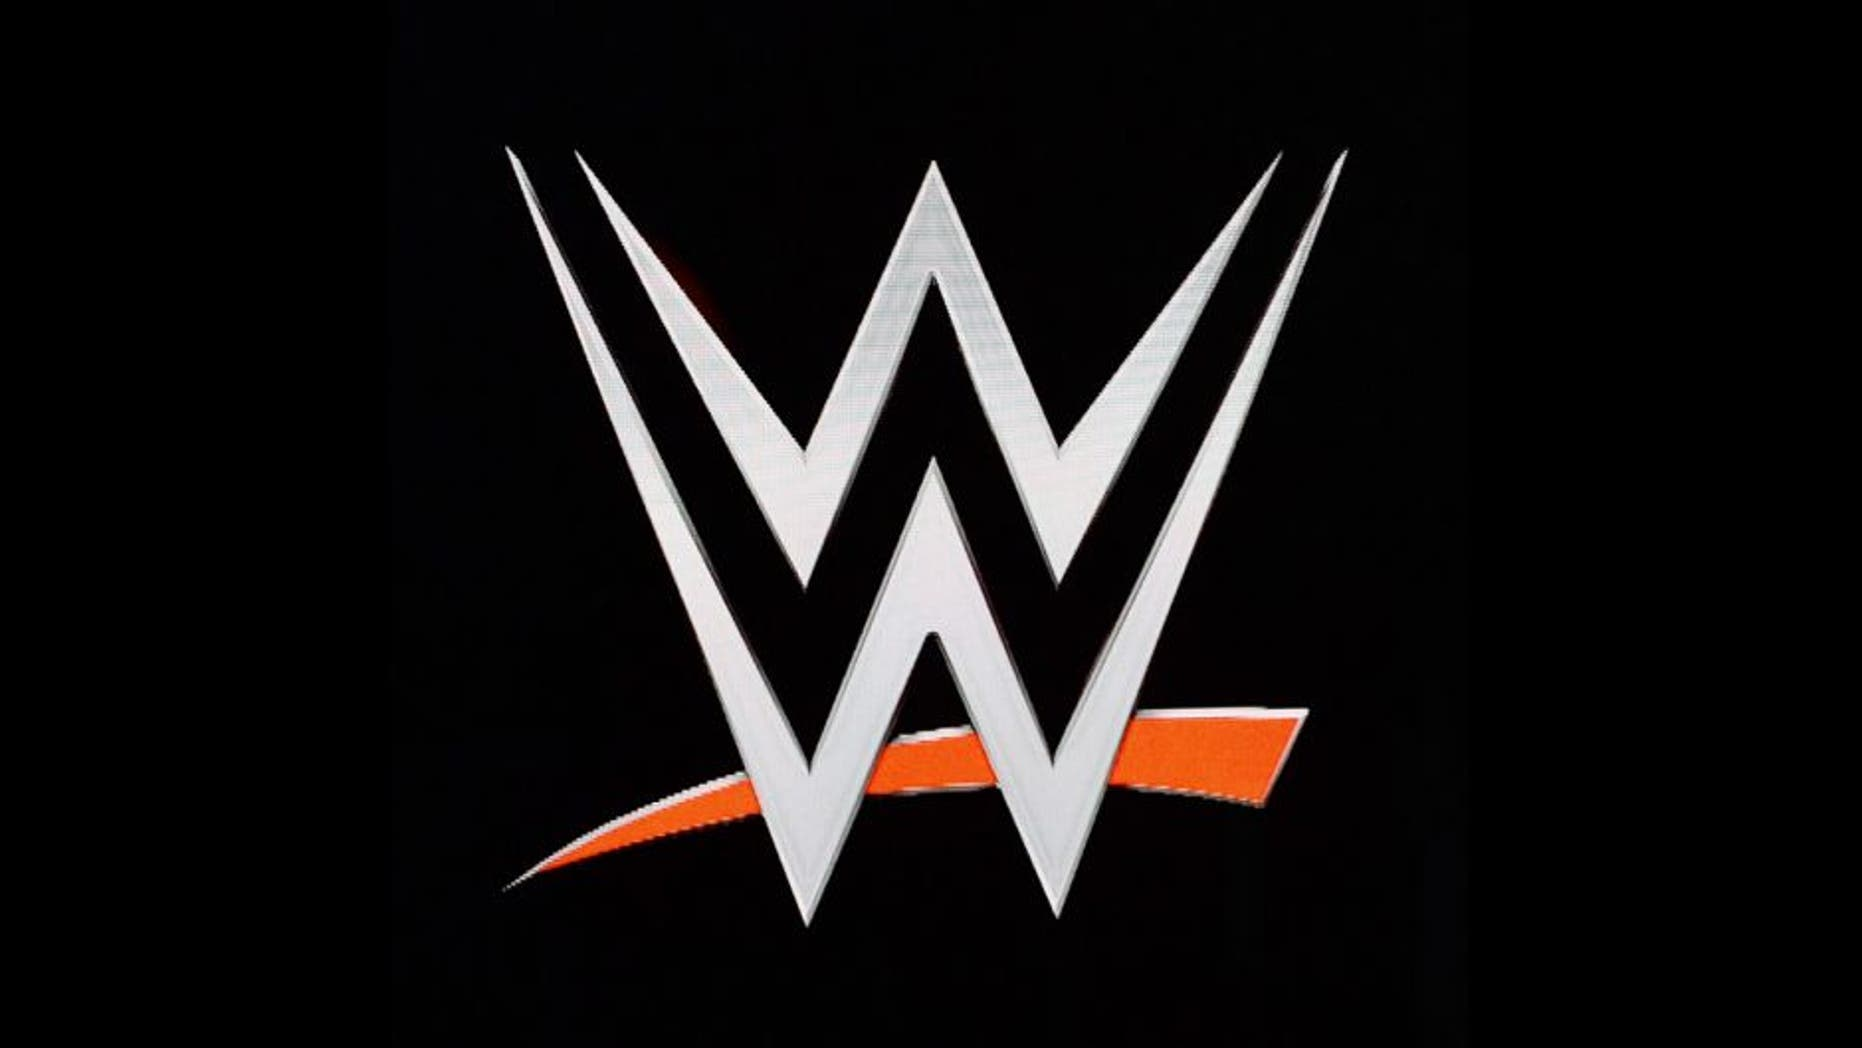 LAS VEGAS, NV - JANUARY 08: The logo for the WWE Network is displayed on a screen after it was announced during a news conference at the 2014 International CES at the Encore Theater at Wynn Las Vegas on January 8, 2014 in Las Vegas, Nevada. The network will launch on February 24, 2014 as the first-ever 24/7 streaming network, offering both scheduled programs and video on demand. The USD 9.99 per month subscription will include access to all 12 live WWE pay-per-view events each year. CES, the world's largest annual consumer technology trade show, runs through January 10 and is expected to feature 3,200 exhibitors showing off their latest products and services to about 150,000 attendees. (Photo by Ethan Miller/Getty Images)